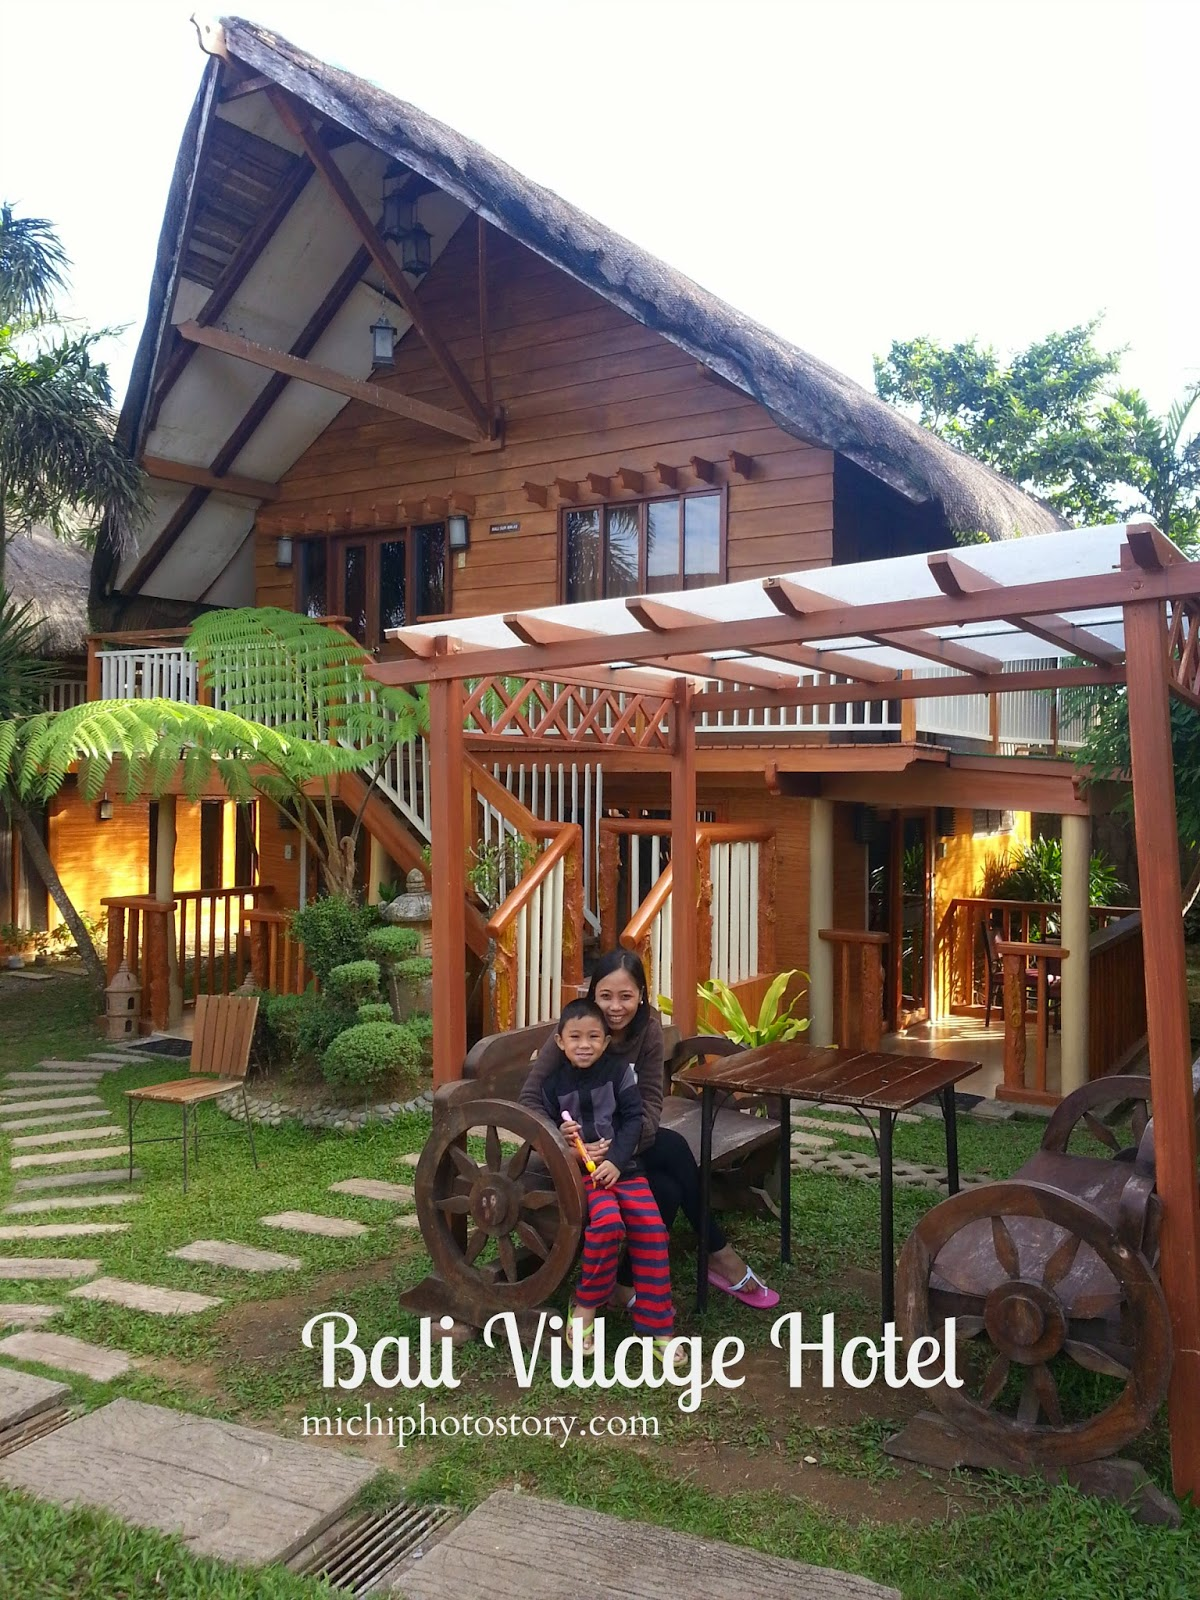 Michi Photostory Staycation Bali Village Hotel